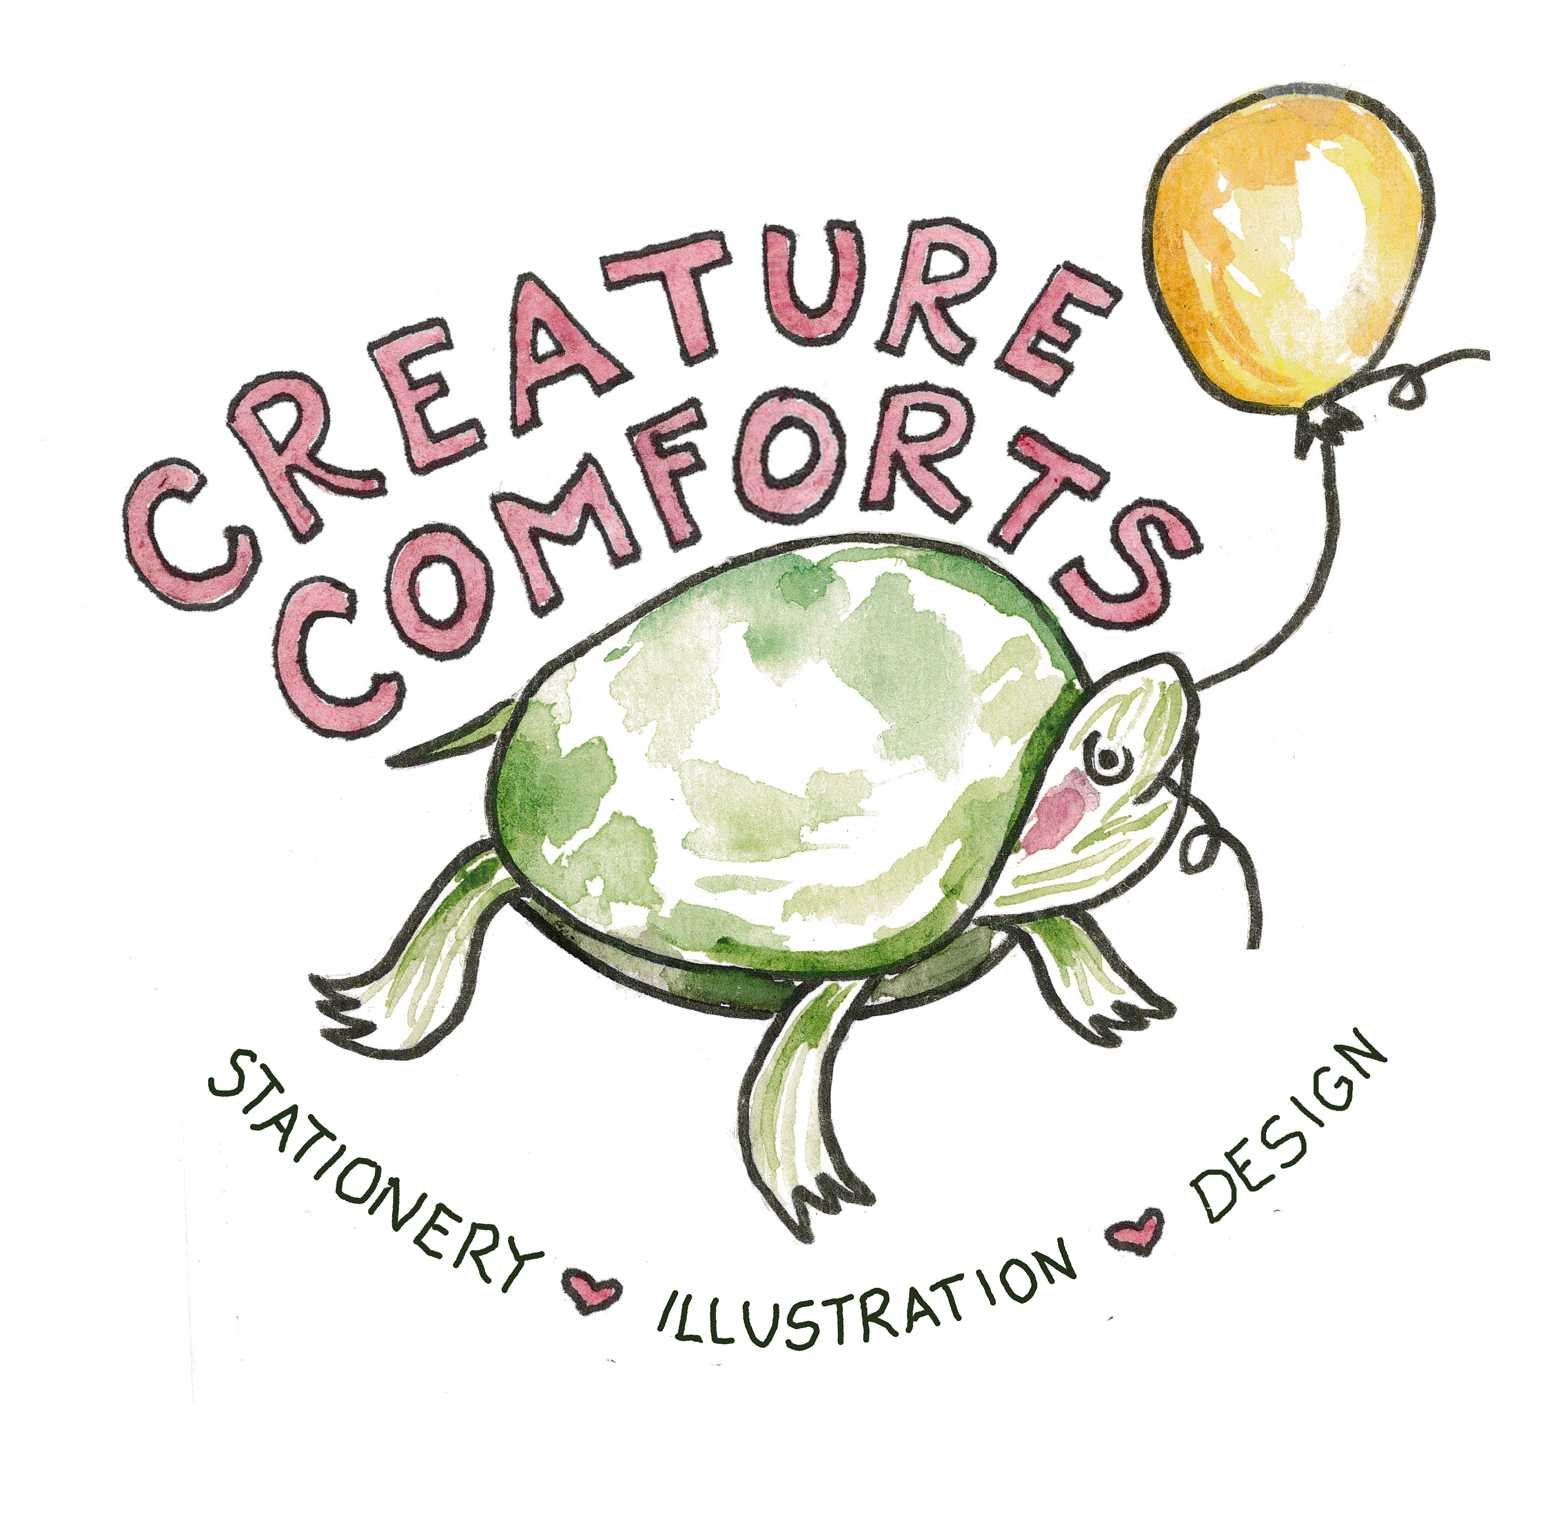 Creature Comforts Stationery and Designs